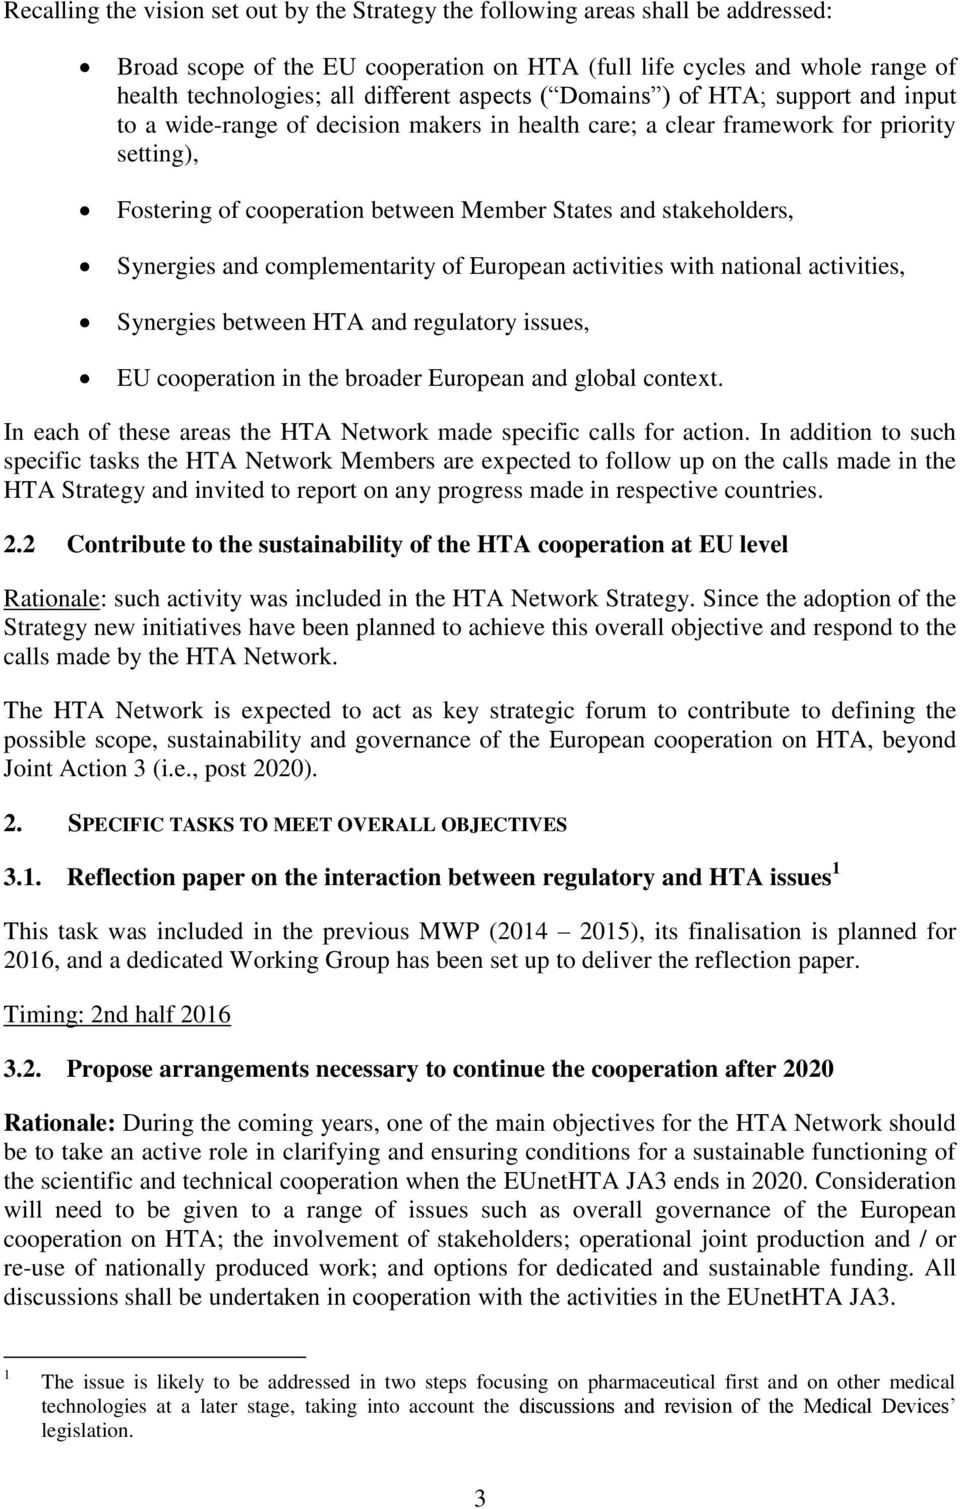 stakeholders, Synergies and complementarity of European activities with national activities, Synergies between HTA and regulatory issues, EU cooperation in the broader European and global context.